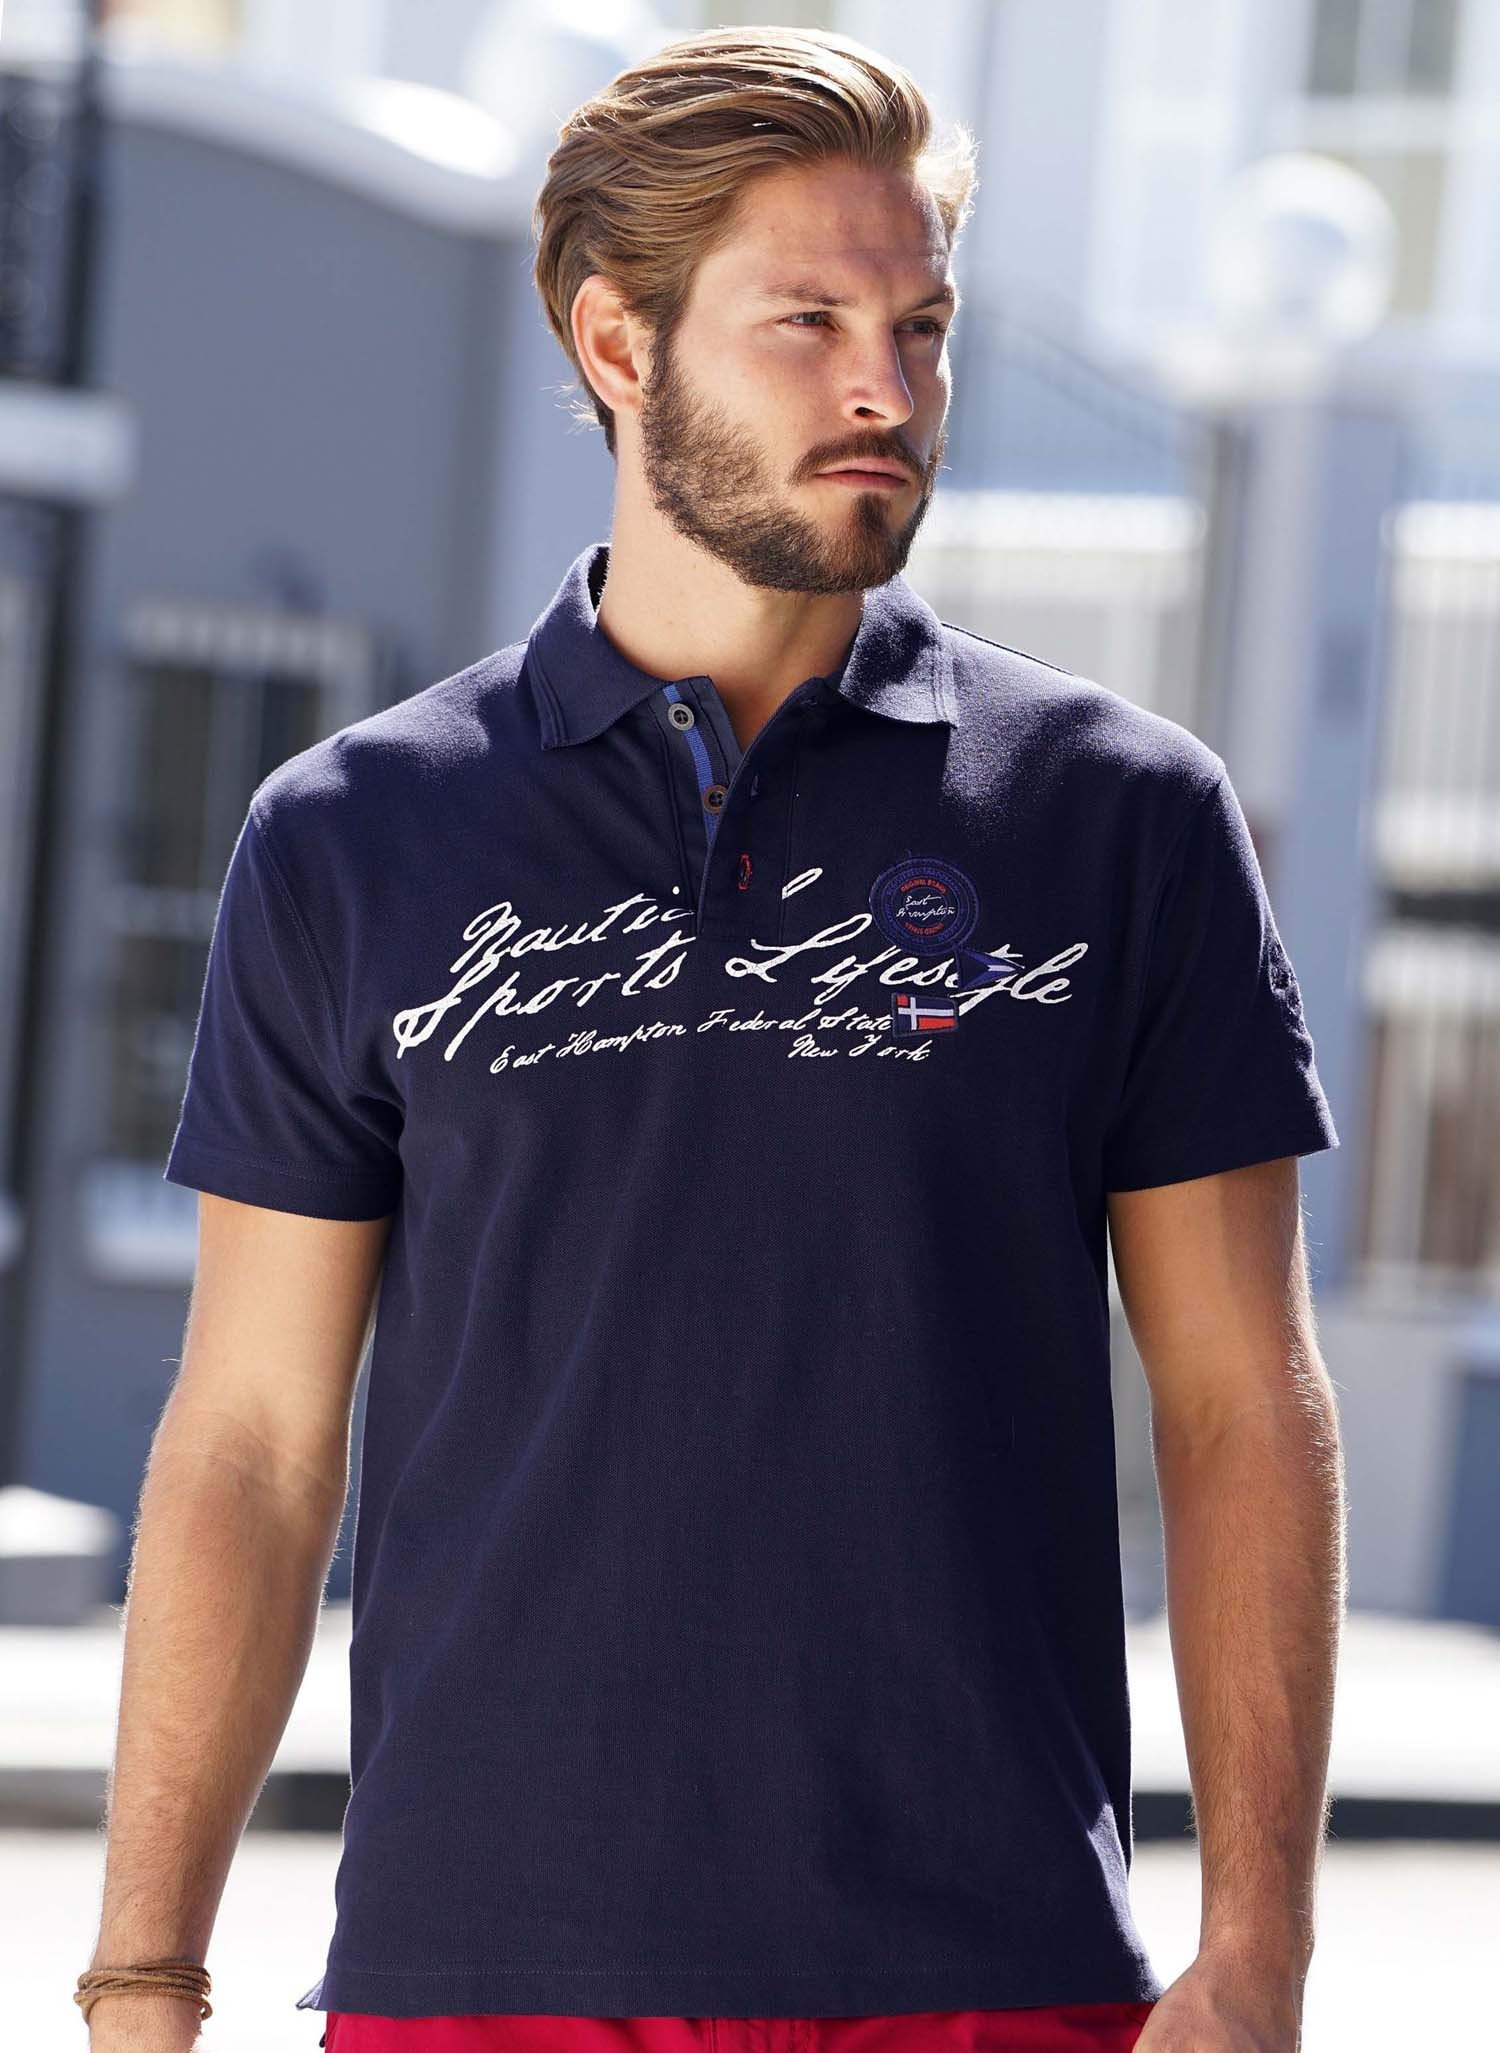 H-KA-Polo-Shirt,Label marine M 053 - 1 - Ronja.ch